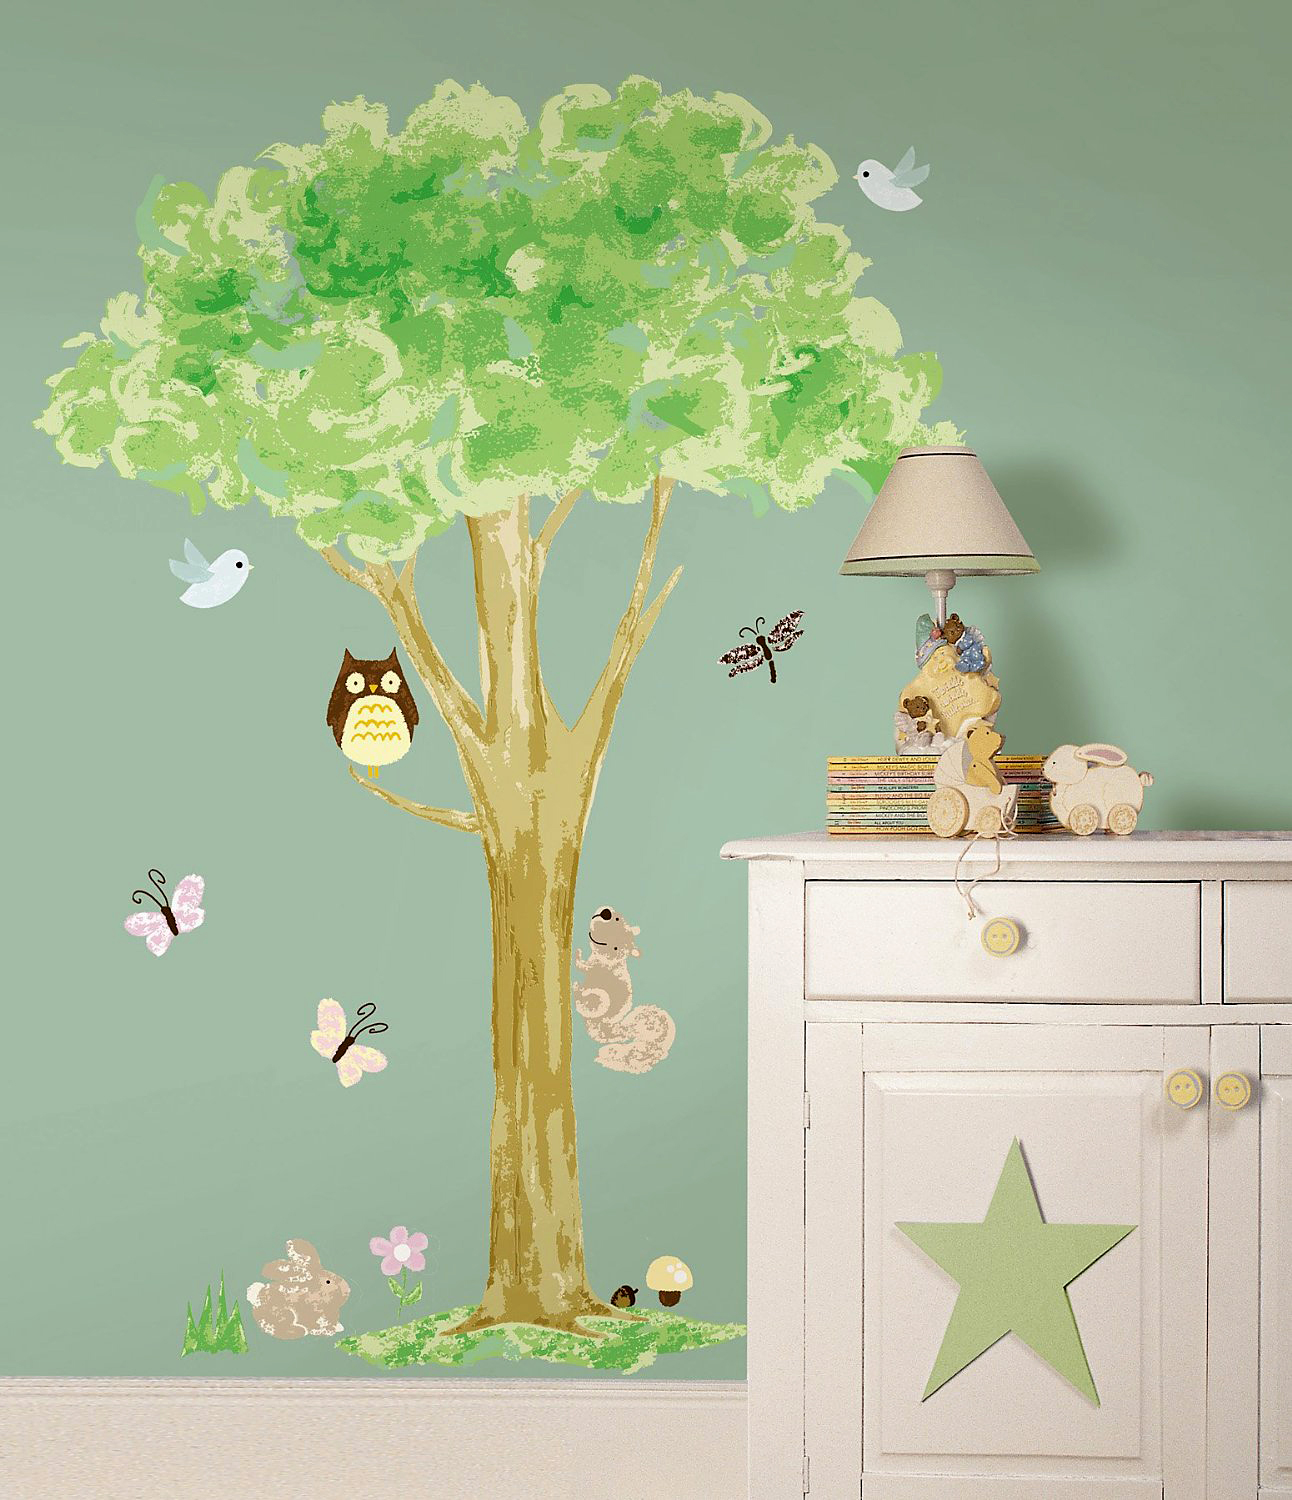 wandsticker baum kinderzimmer | bnbnews.co